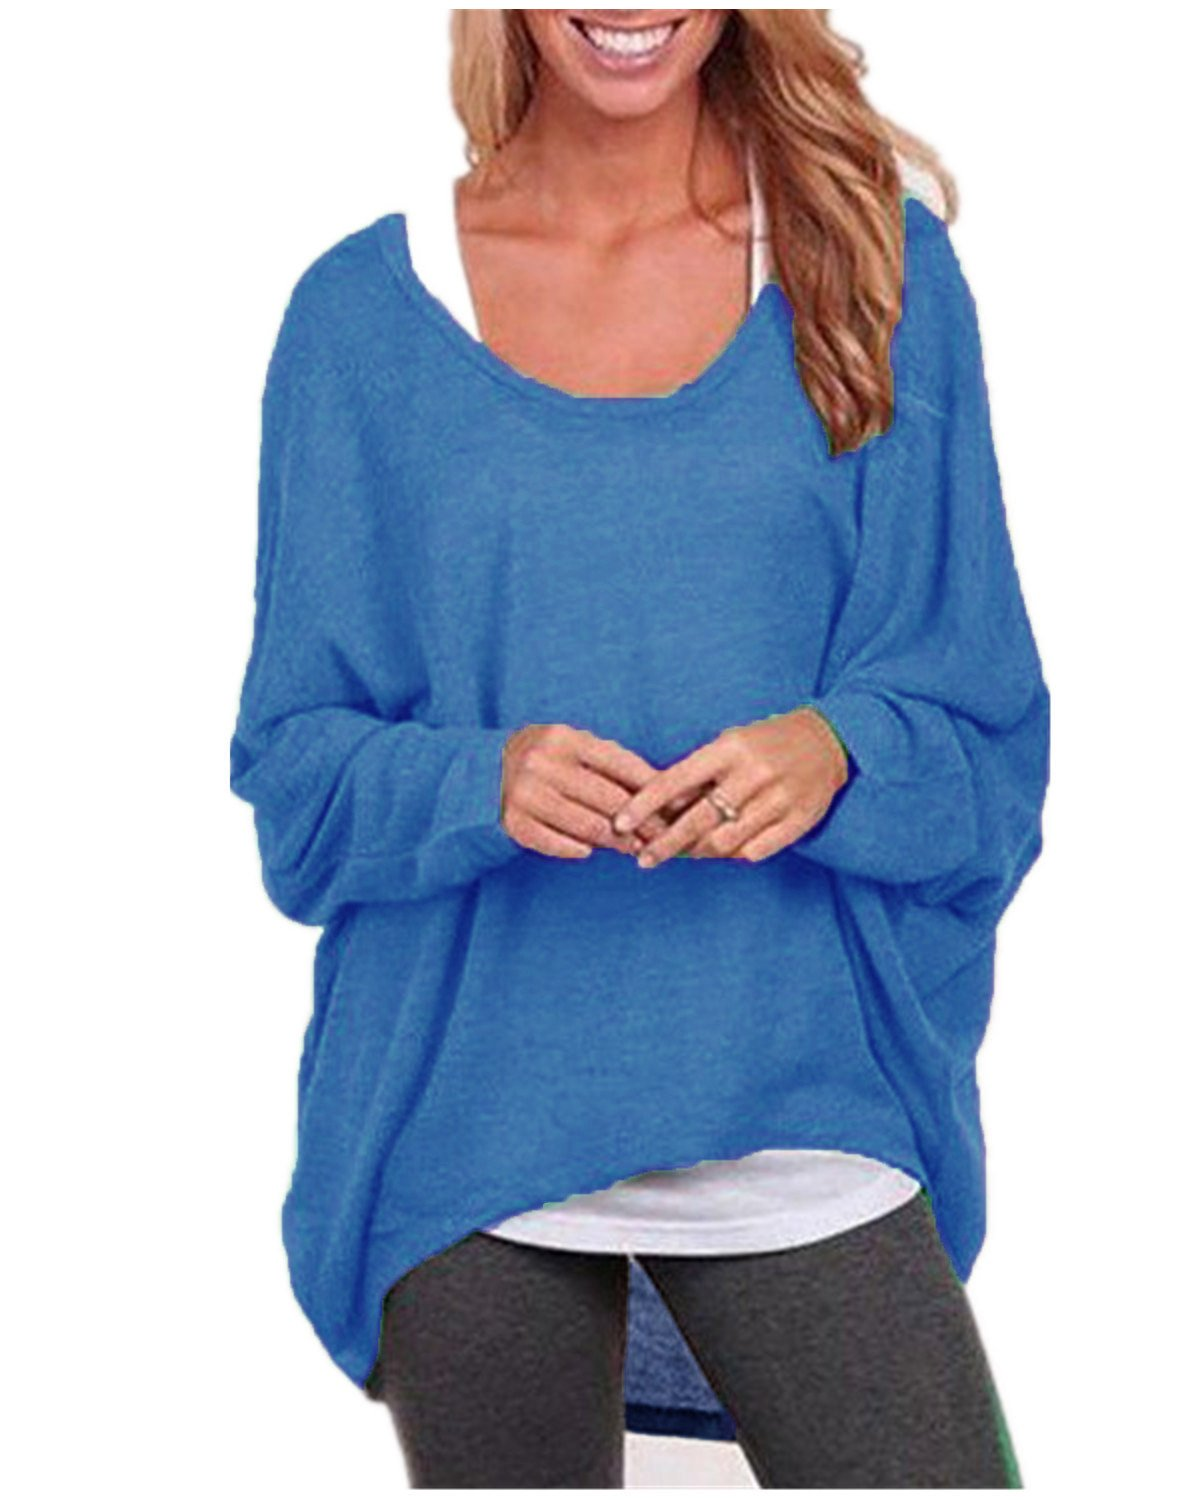 ZANZEA Women's Long Batwing Sleeve Loose Oversize Pullover Sweater Top Blouse Blue US 8/Tag Size M